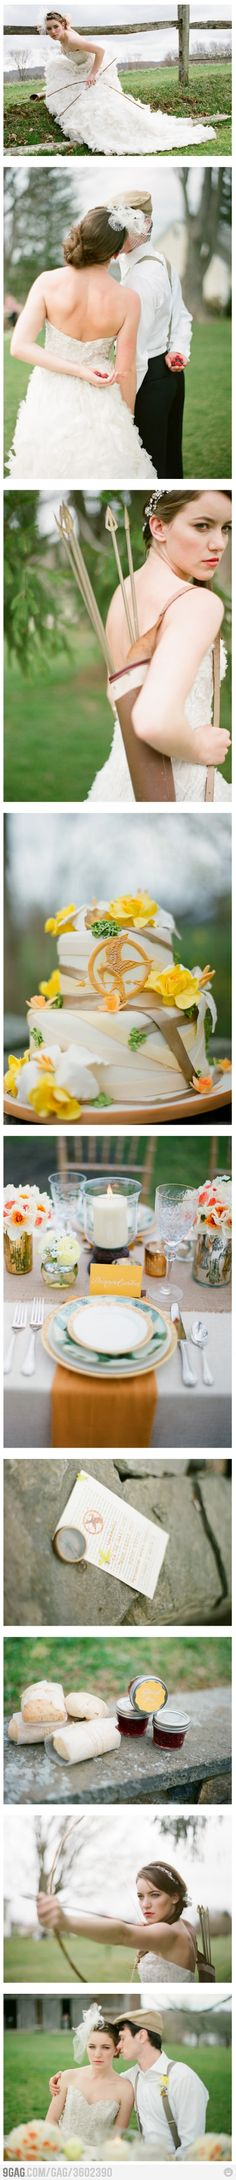 Hunger Games Themed Wedding...